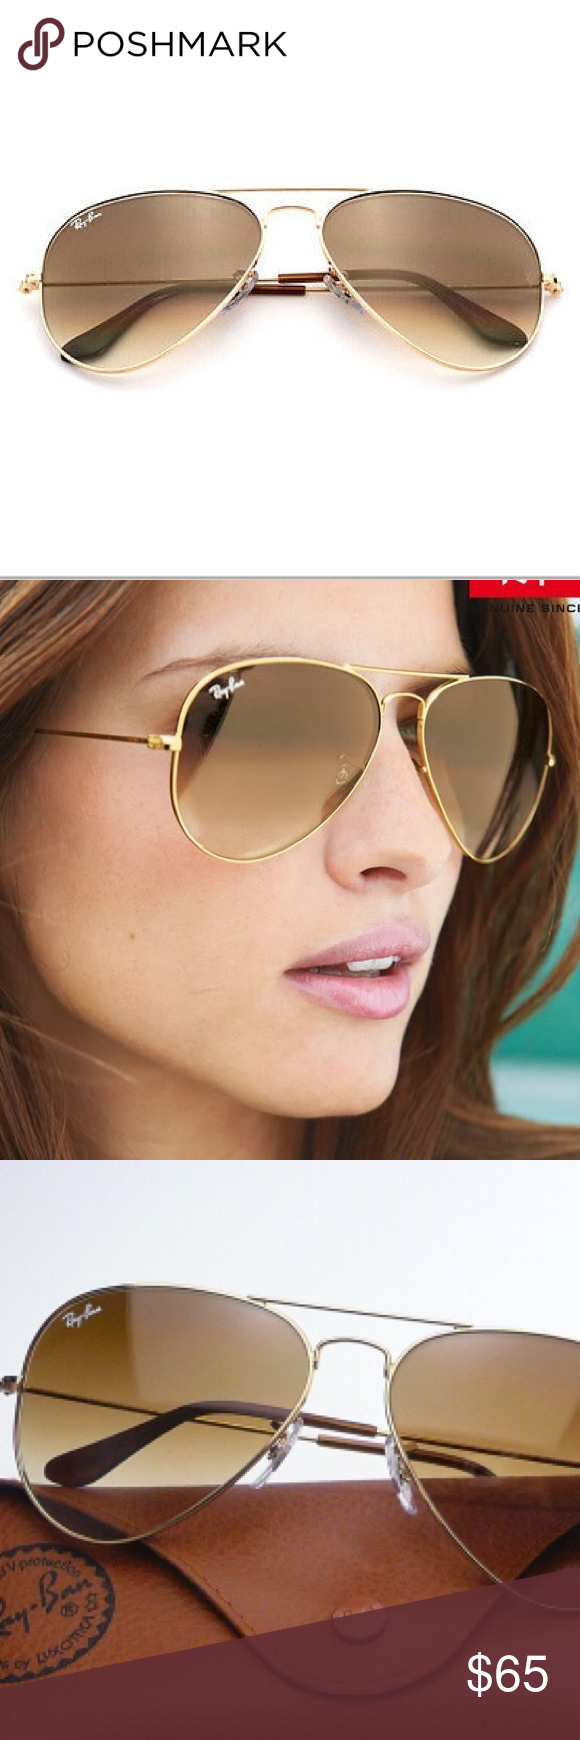 ee372f12e7a0 Ray-Ban Aviator Gold Brown Gradient RB3025 001 51 Ray-Ban Aviator Gradient  sunglasses encompass the teardrop shape that started it all.